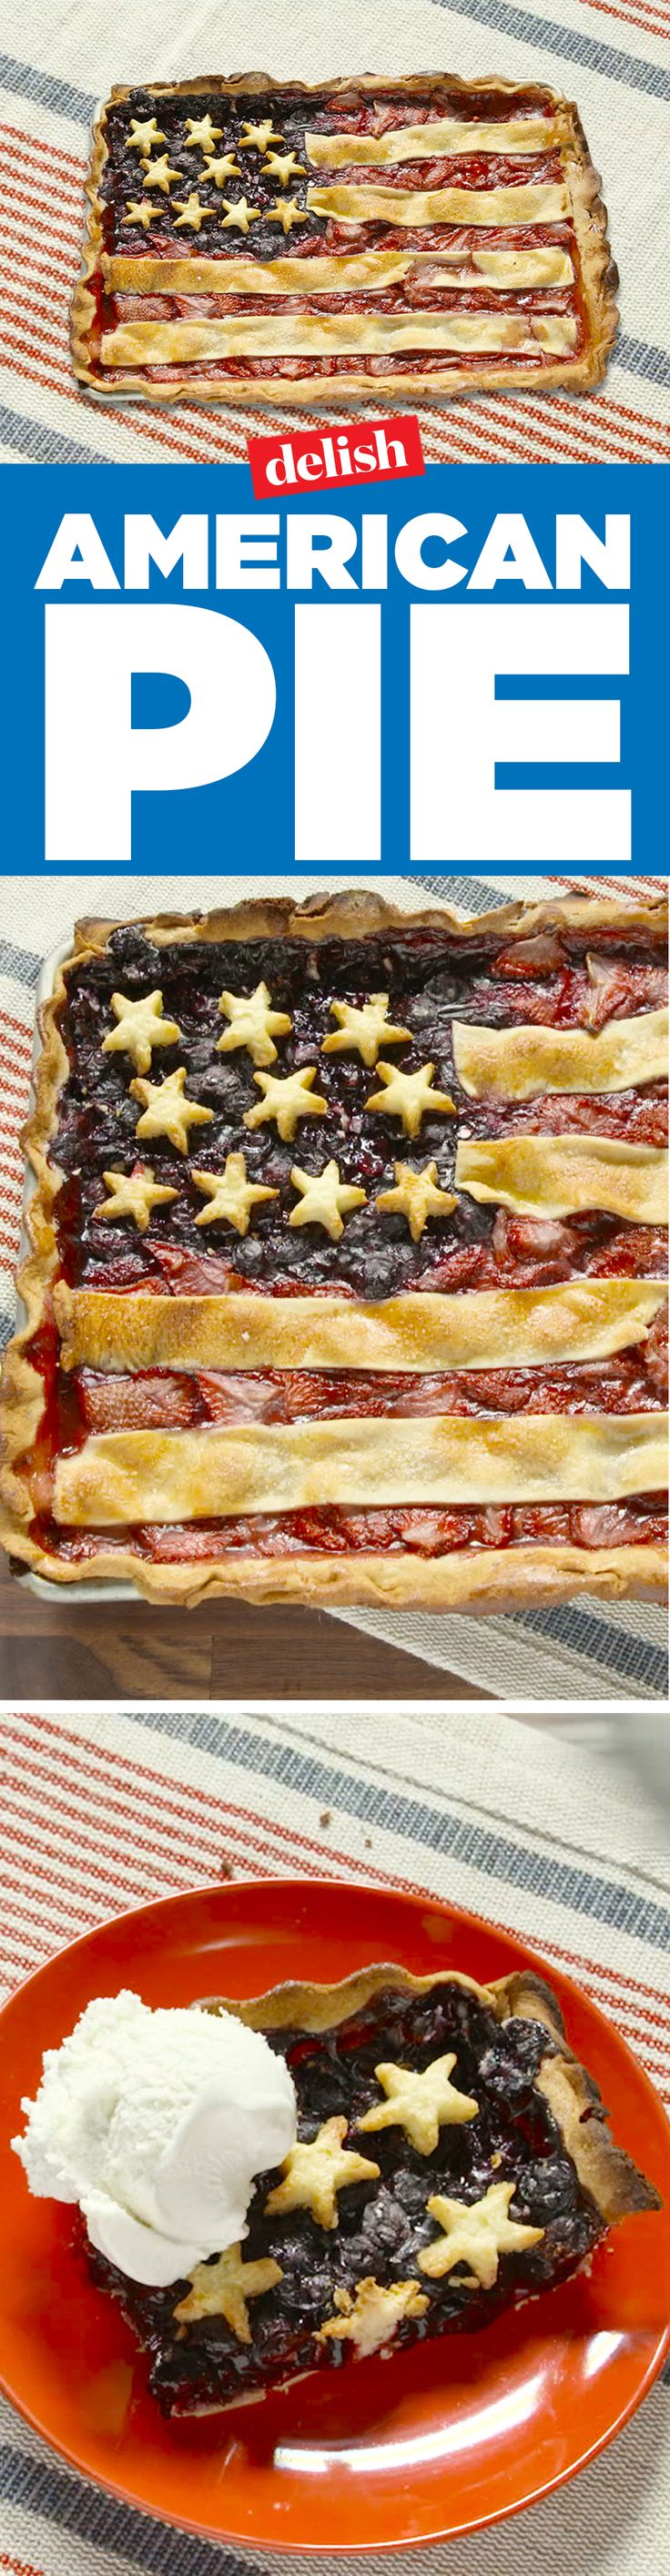 American Pie is the only dessert you should serve on the 4th of July. Get the recipe on Delish.com.